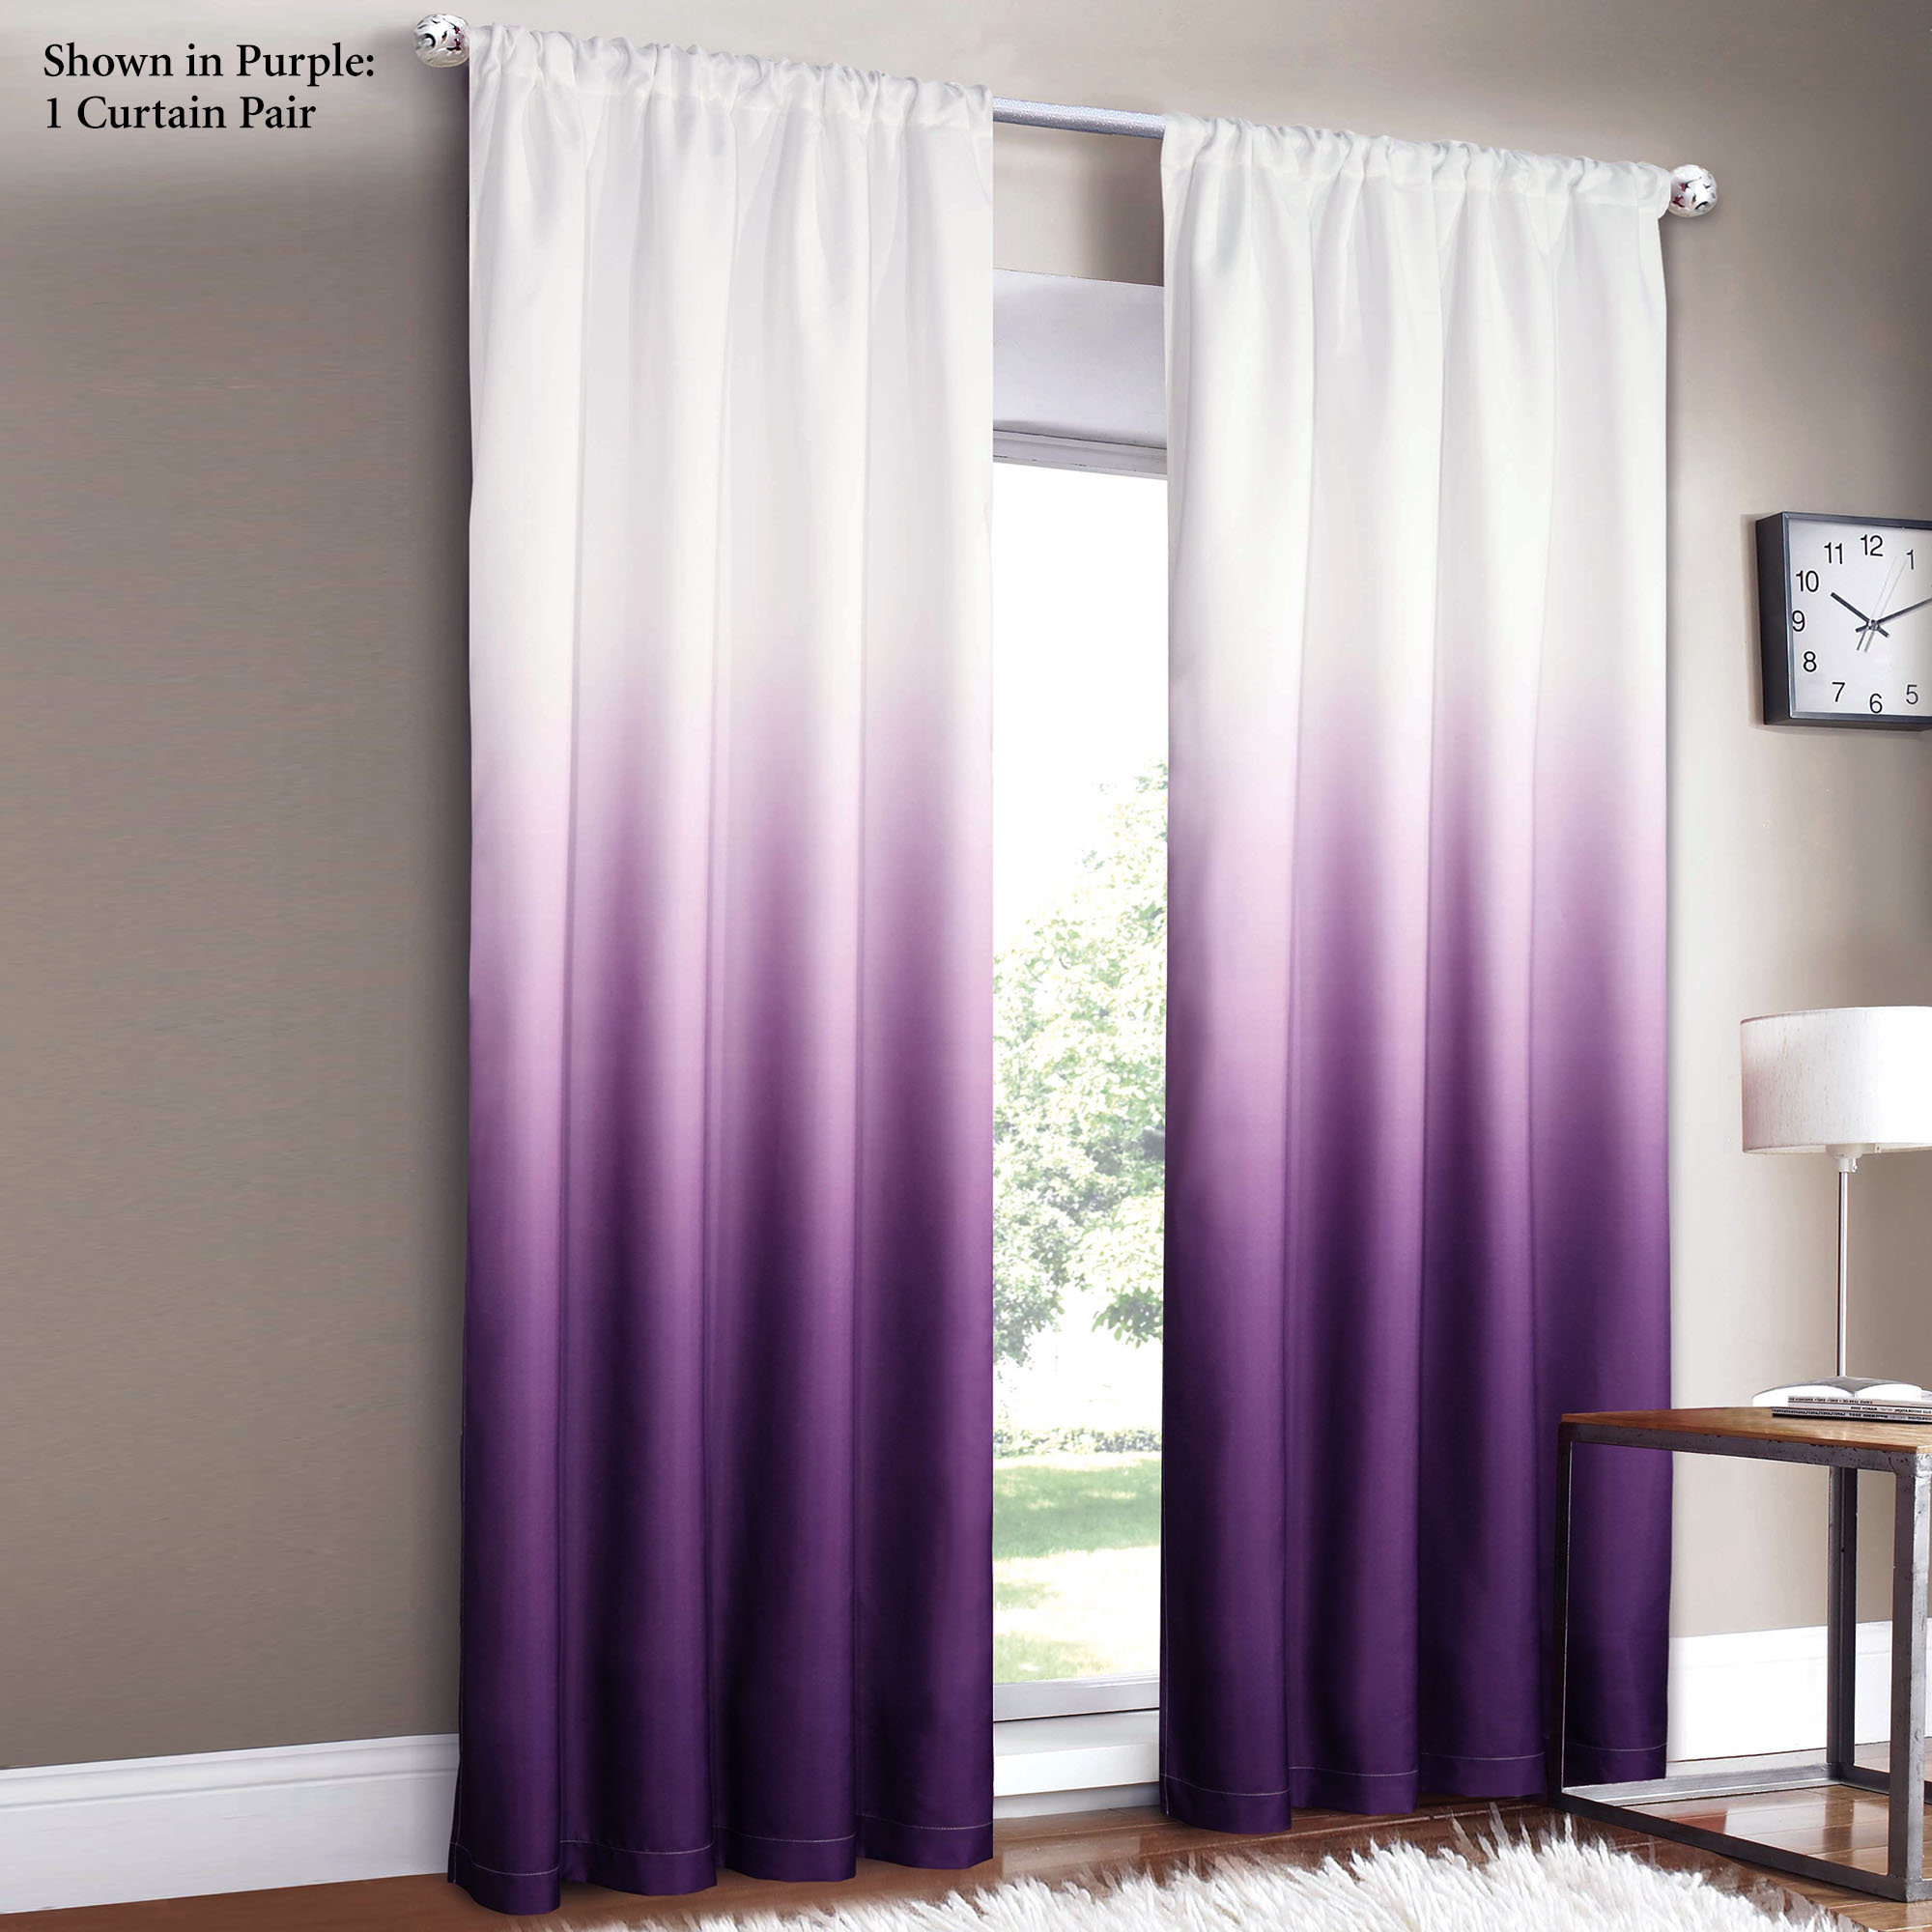 Curtains clipart bedroom curtain. Awesome for black ideas